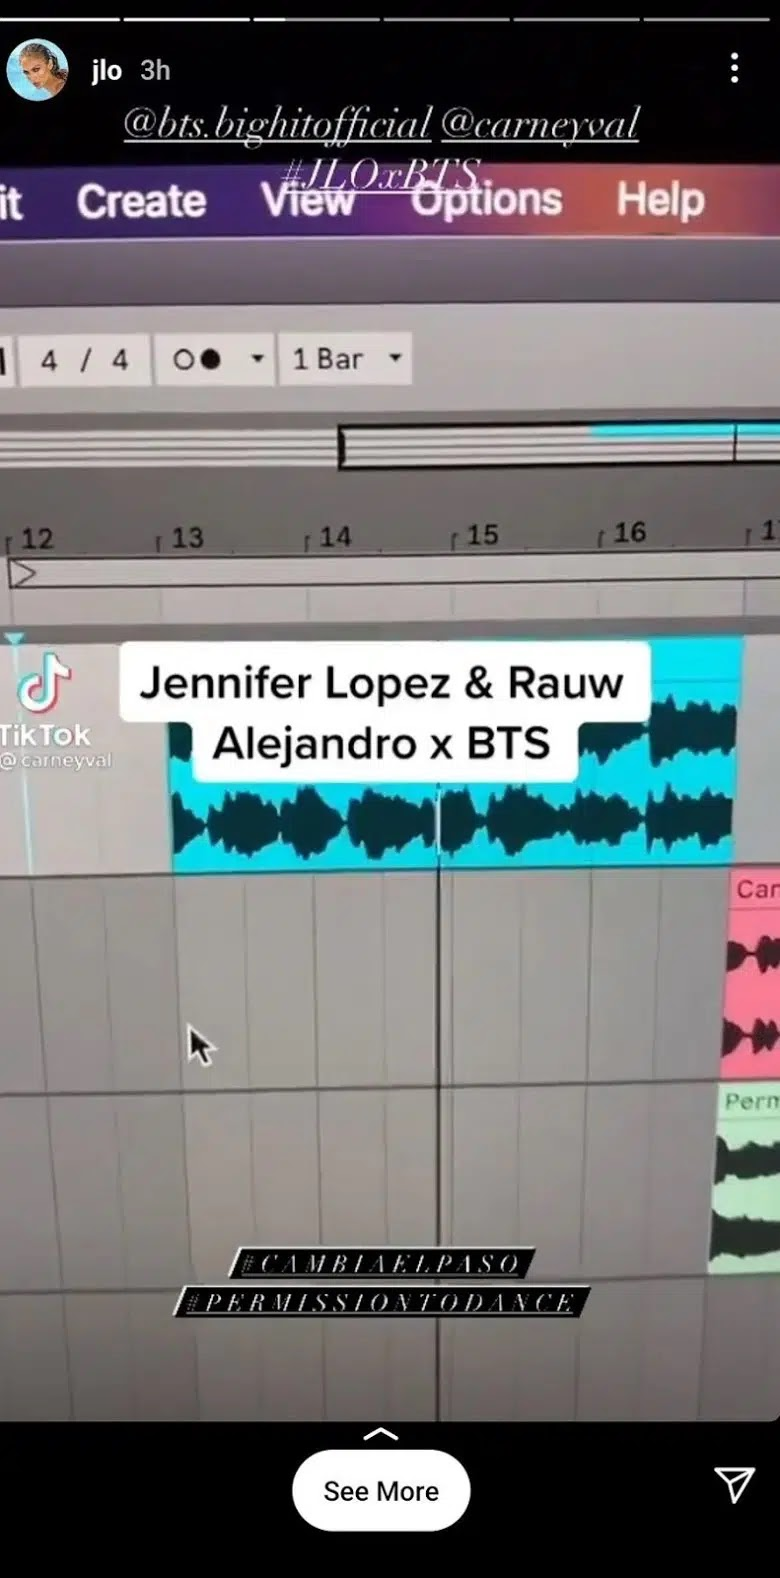 Share Her Mashup Song and BTS, Jennifer Lopez Gives Collaboration Hints?